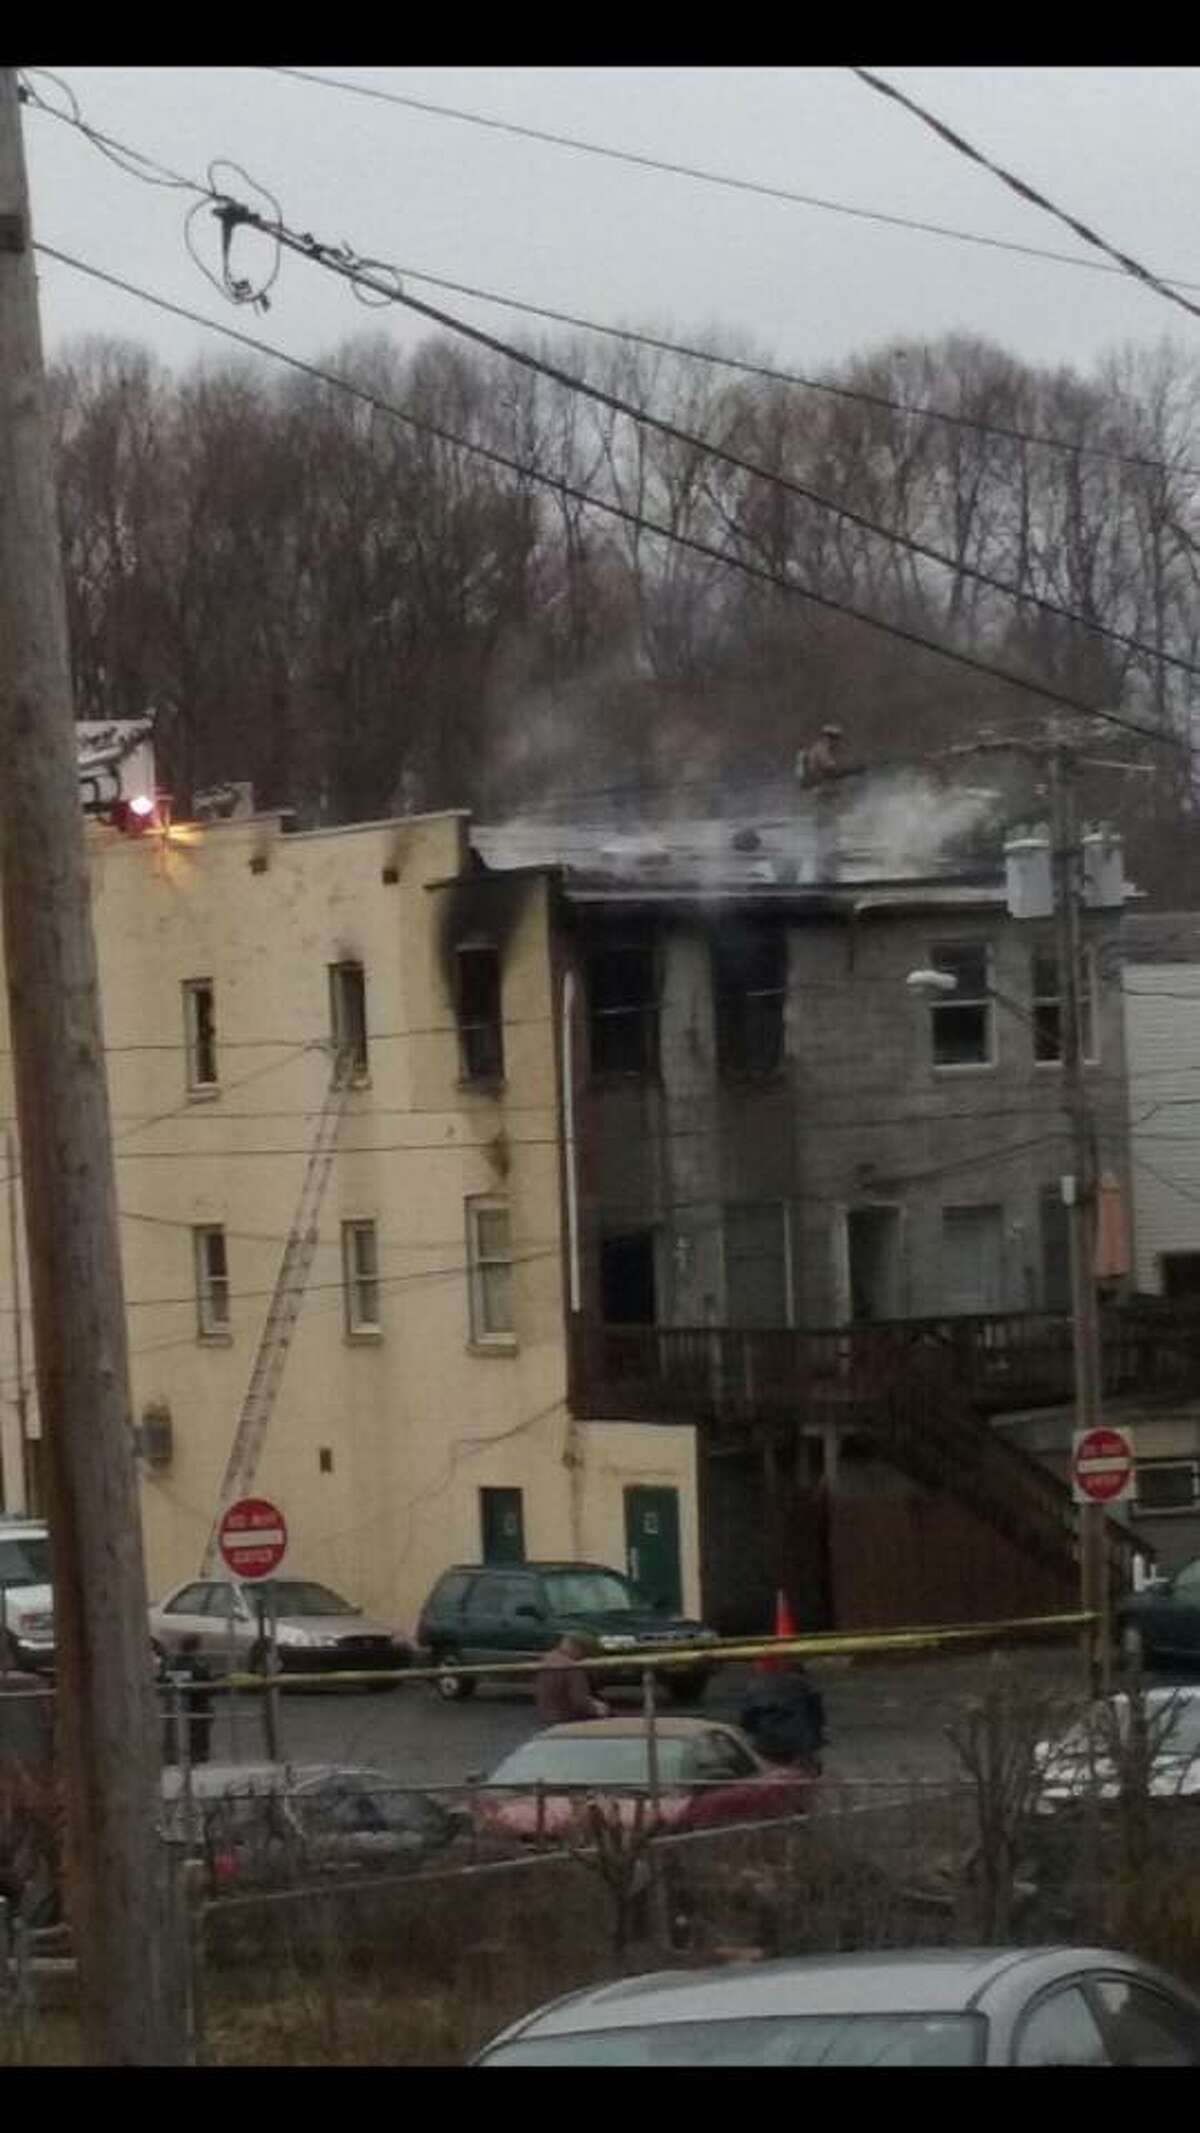 Fire damaged 351 Congress St. in Troy, N.Y. on Saturday, Jan. 9, 2016. (Chris Taylor - Capital Distsrict Fire Buffs Facebook Page)